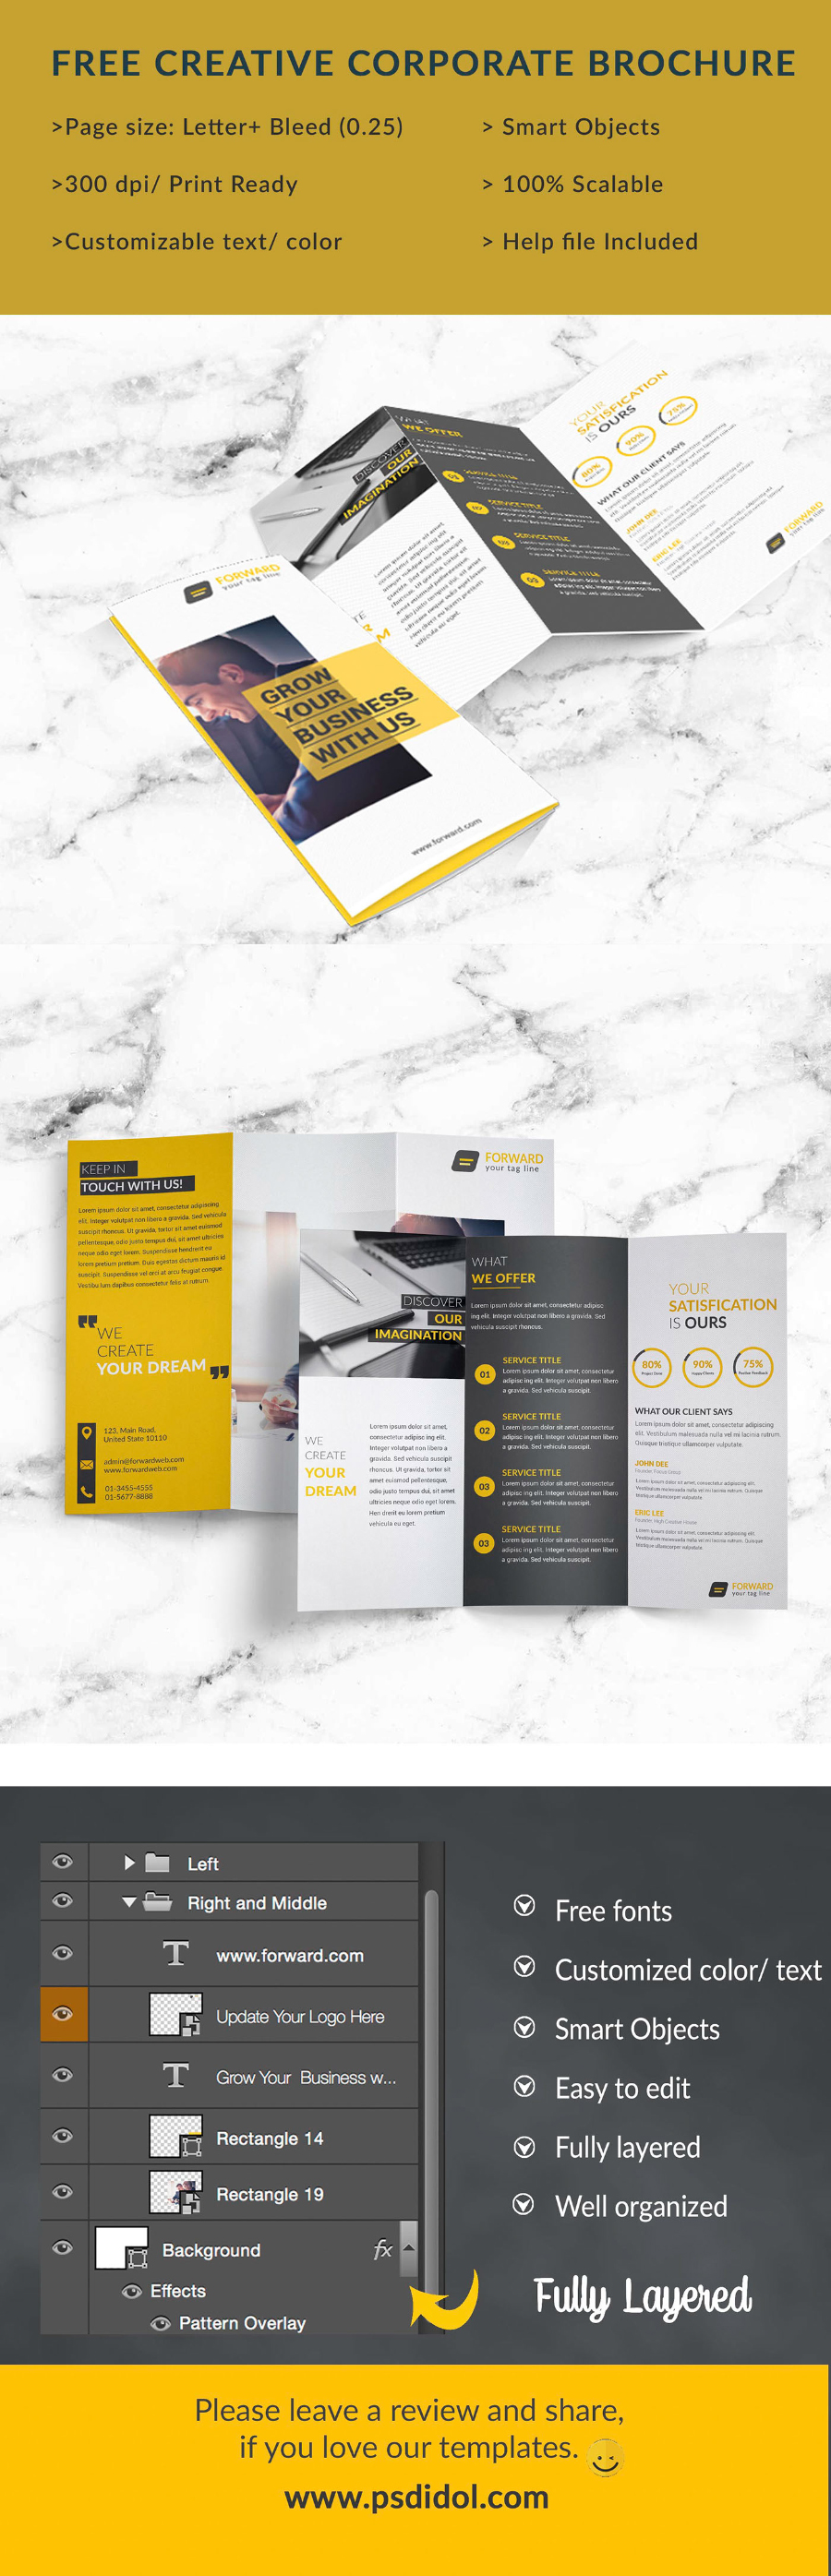 Free creative corporate trifold brochure free design resources free creative corporate trifold brochure saigontimesfo